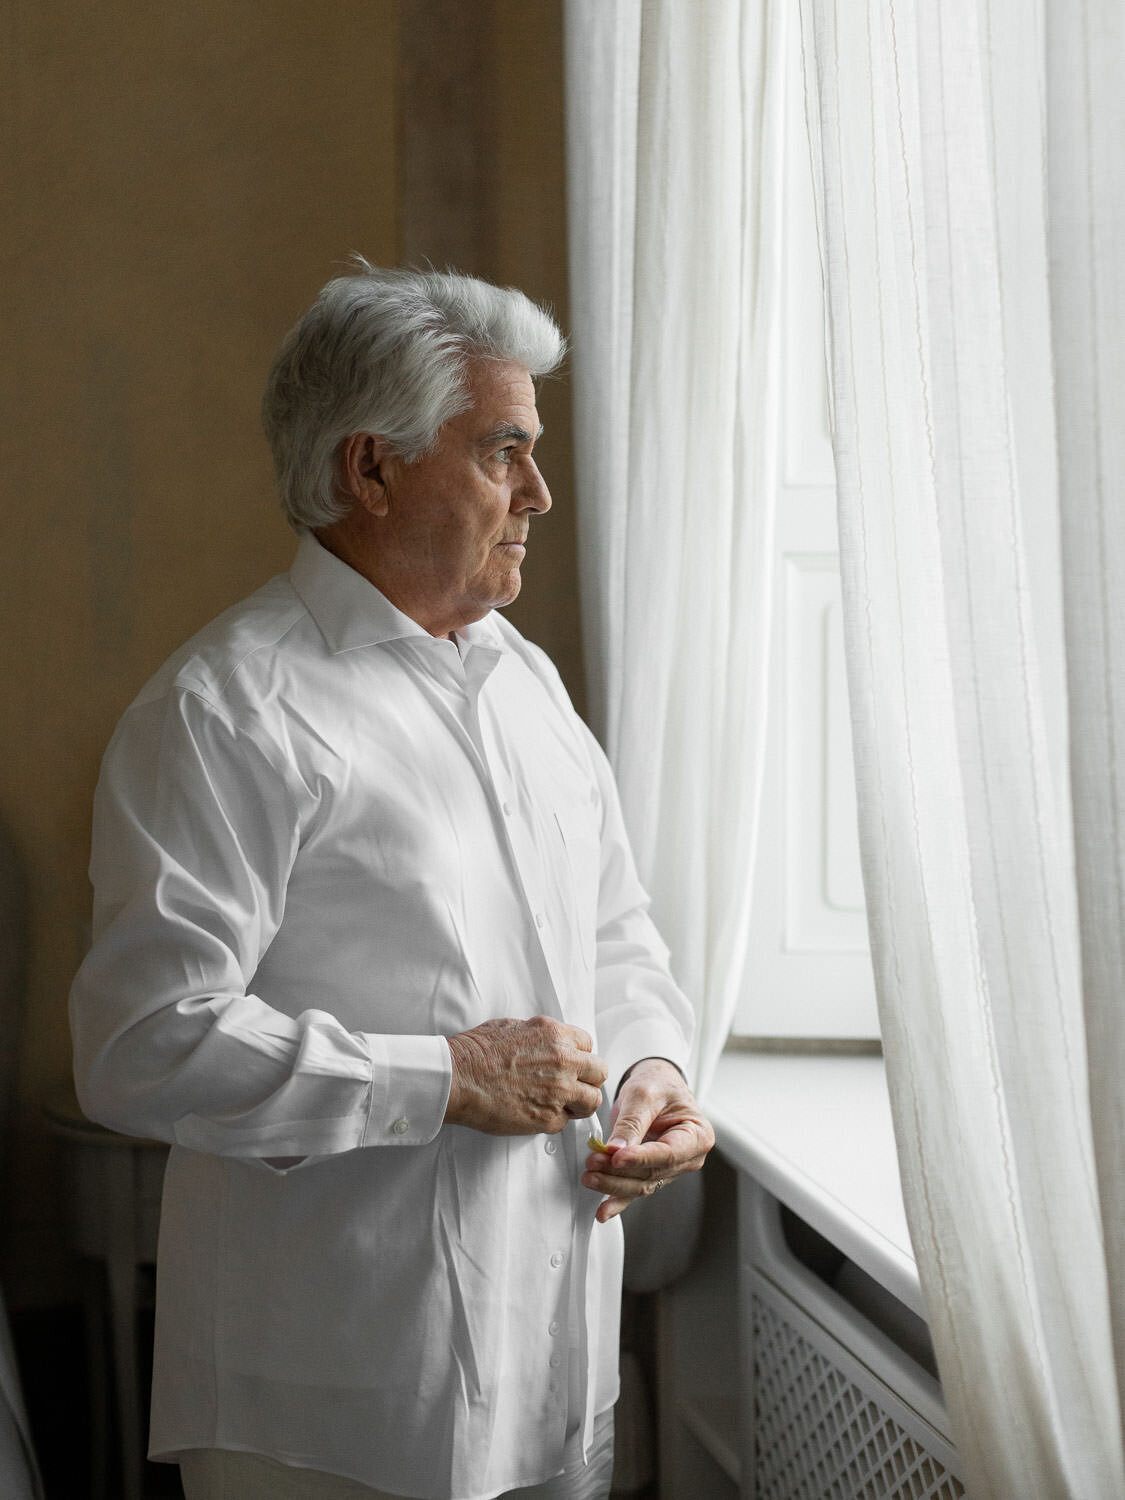 grey headed father buttoning white shirt in front of window